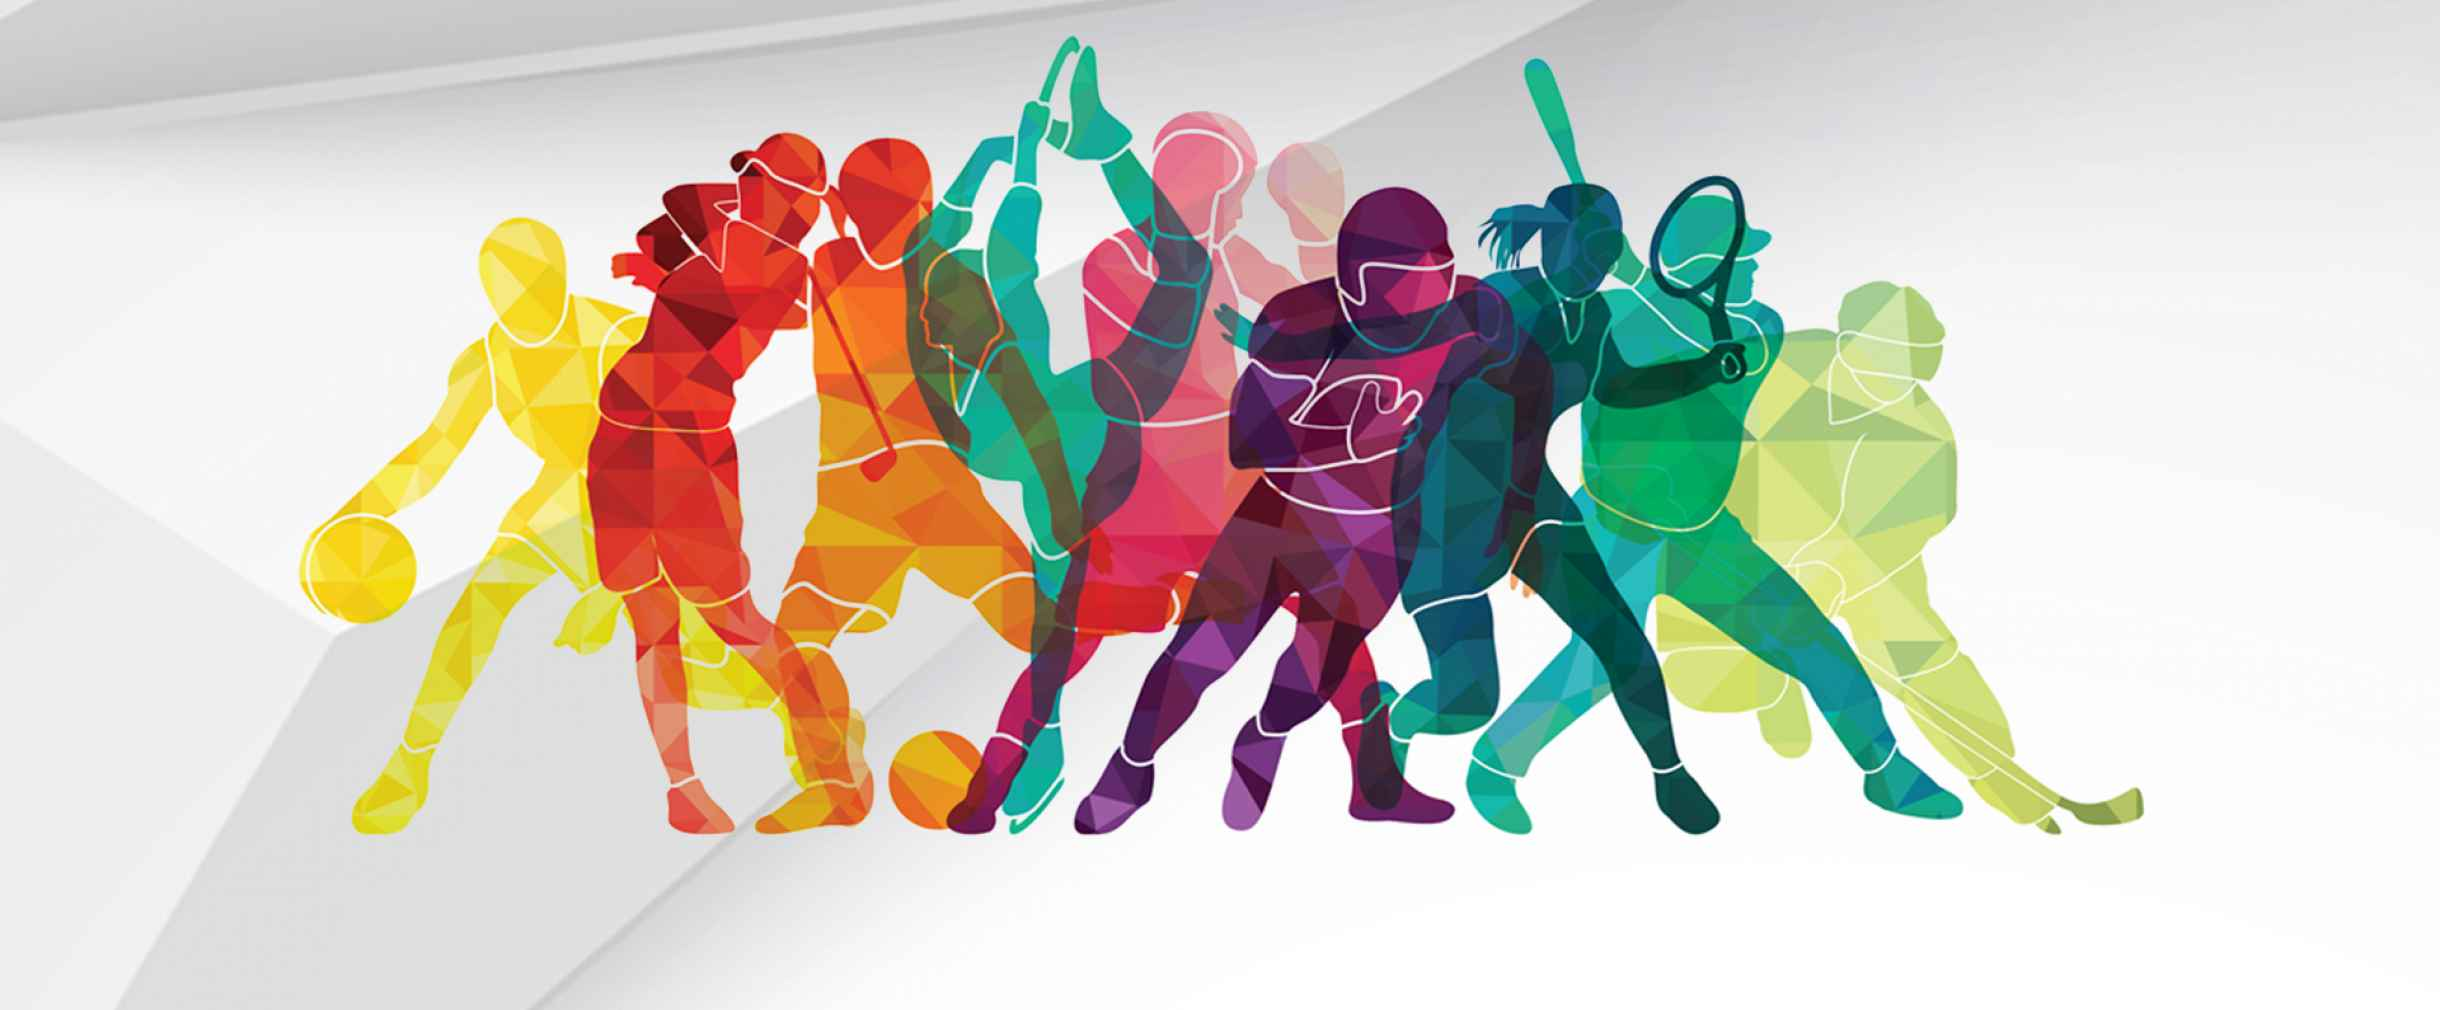 A group of different colored people images in various poses for different sports